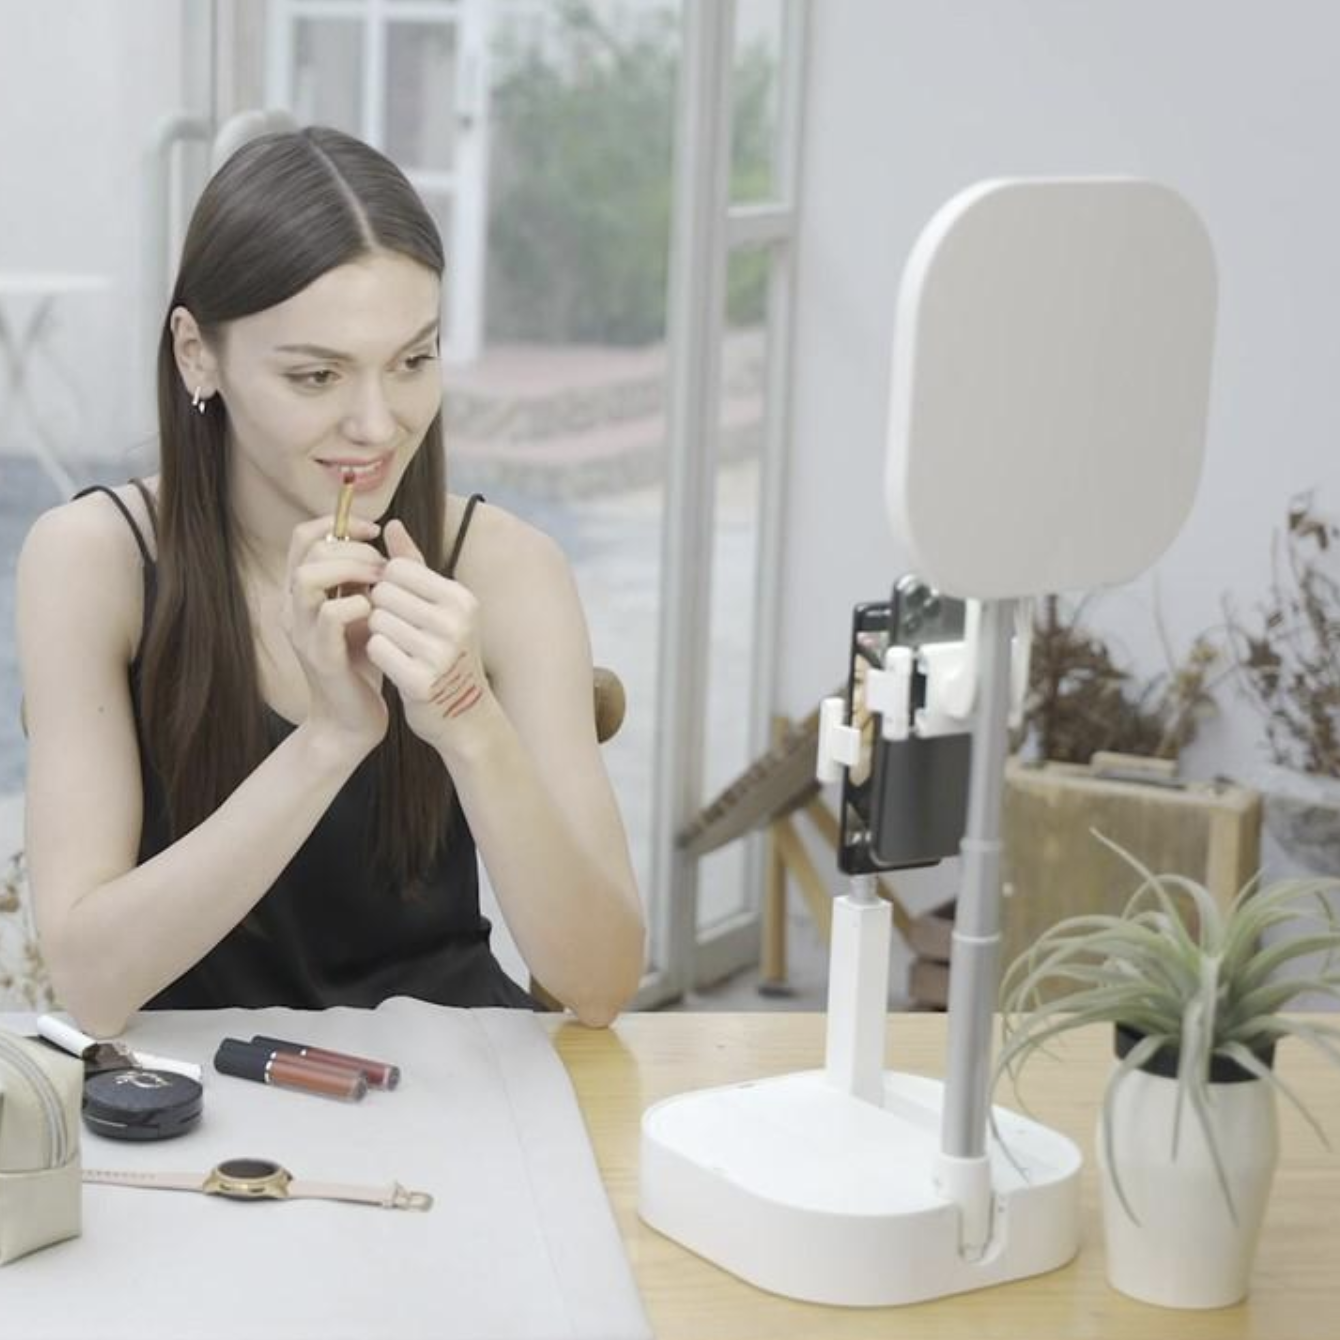 Introducing De Light: The First All-In-One, Fold-Out Convertible Streaming Light & Stand Set